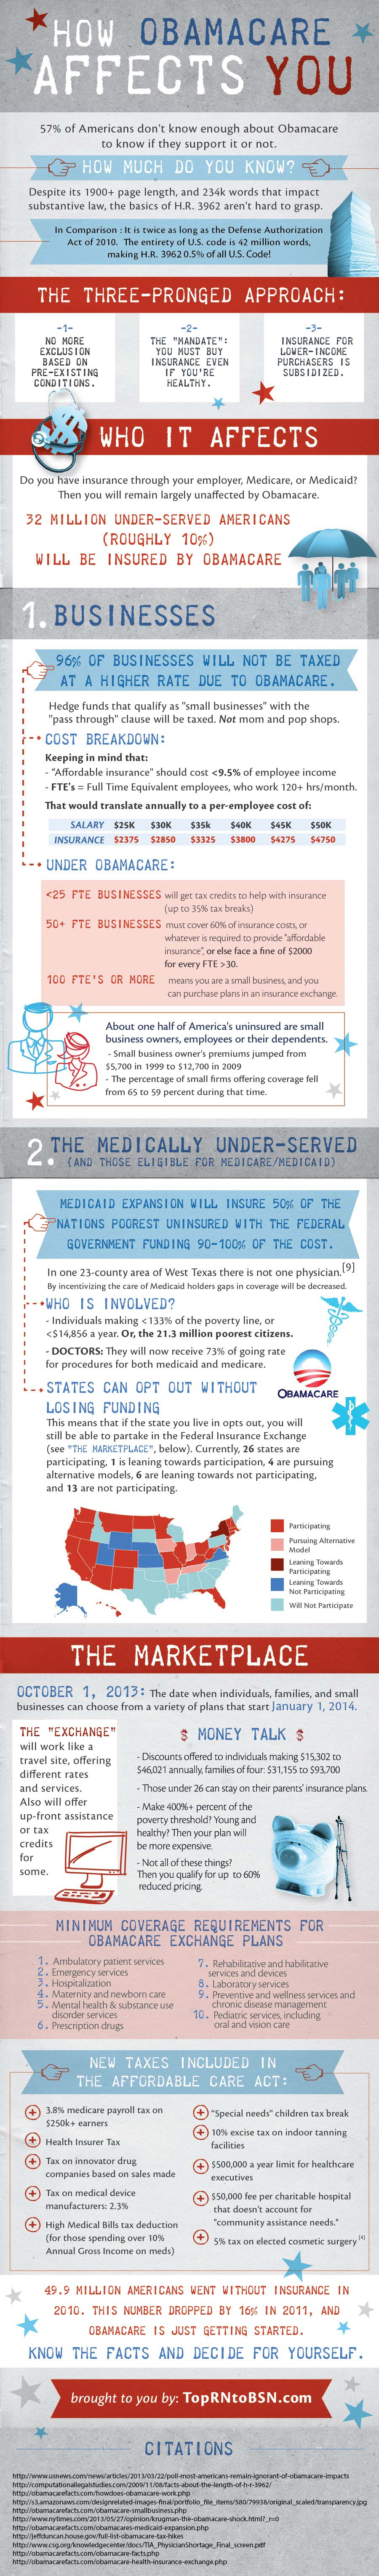 Obamacare Specifics-Infographic